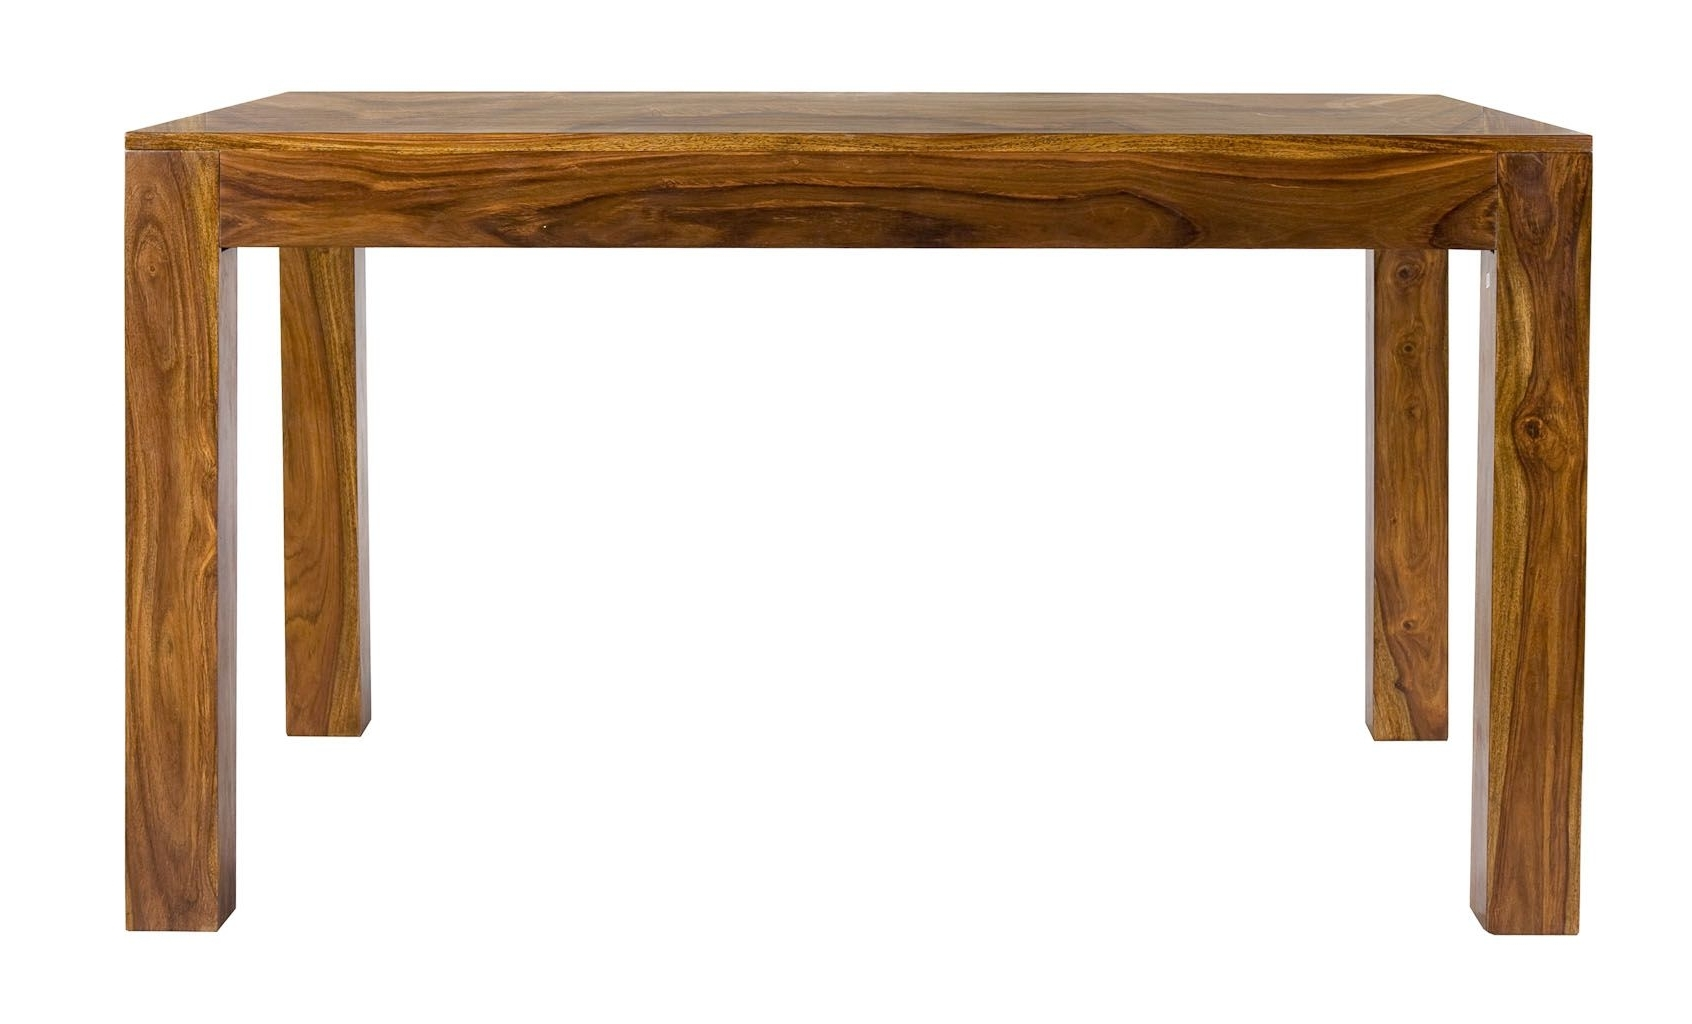 2018 Cube Sheesham Indian Wood Modern 175Cm Dining Table Within Indian Wood Dining Tables (Gallery 18 of 25)